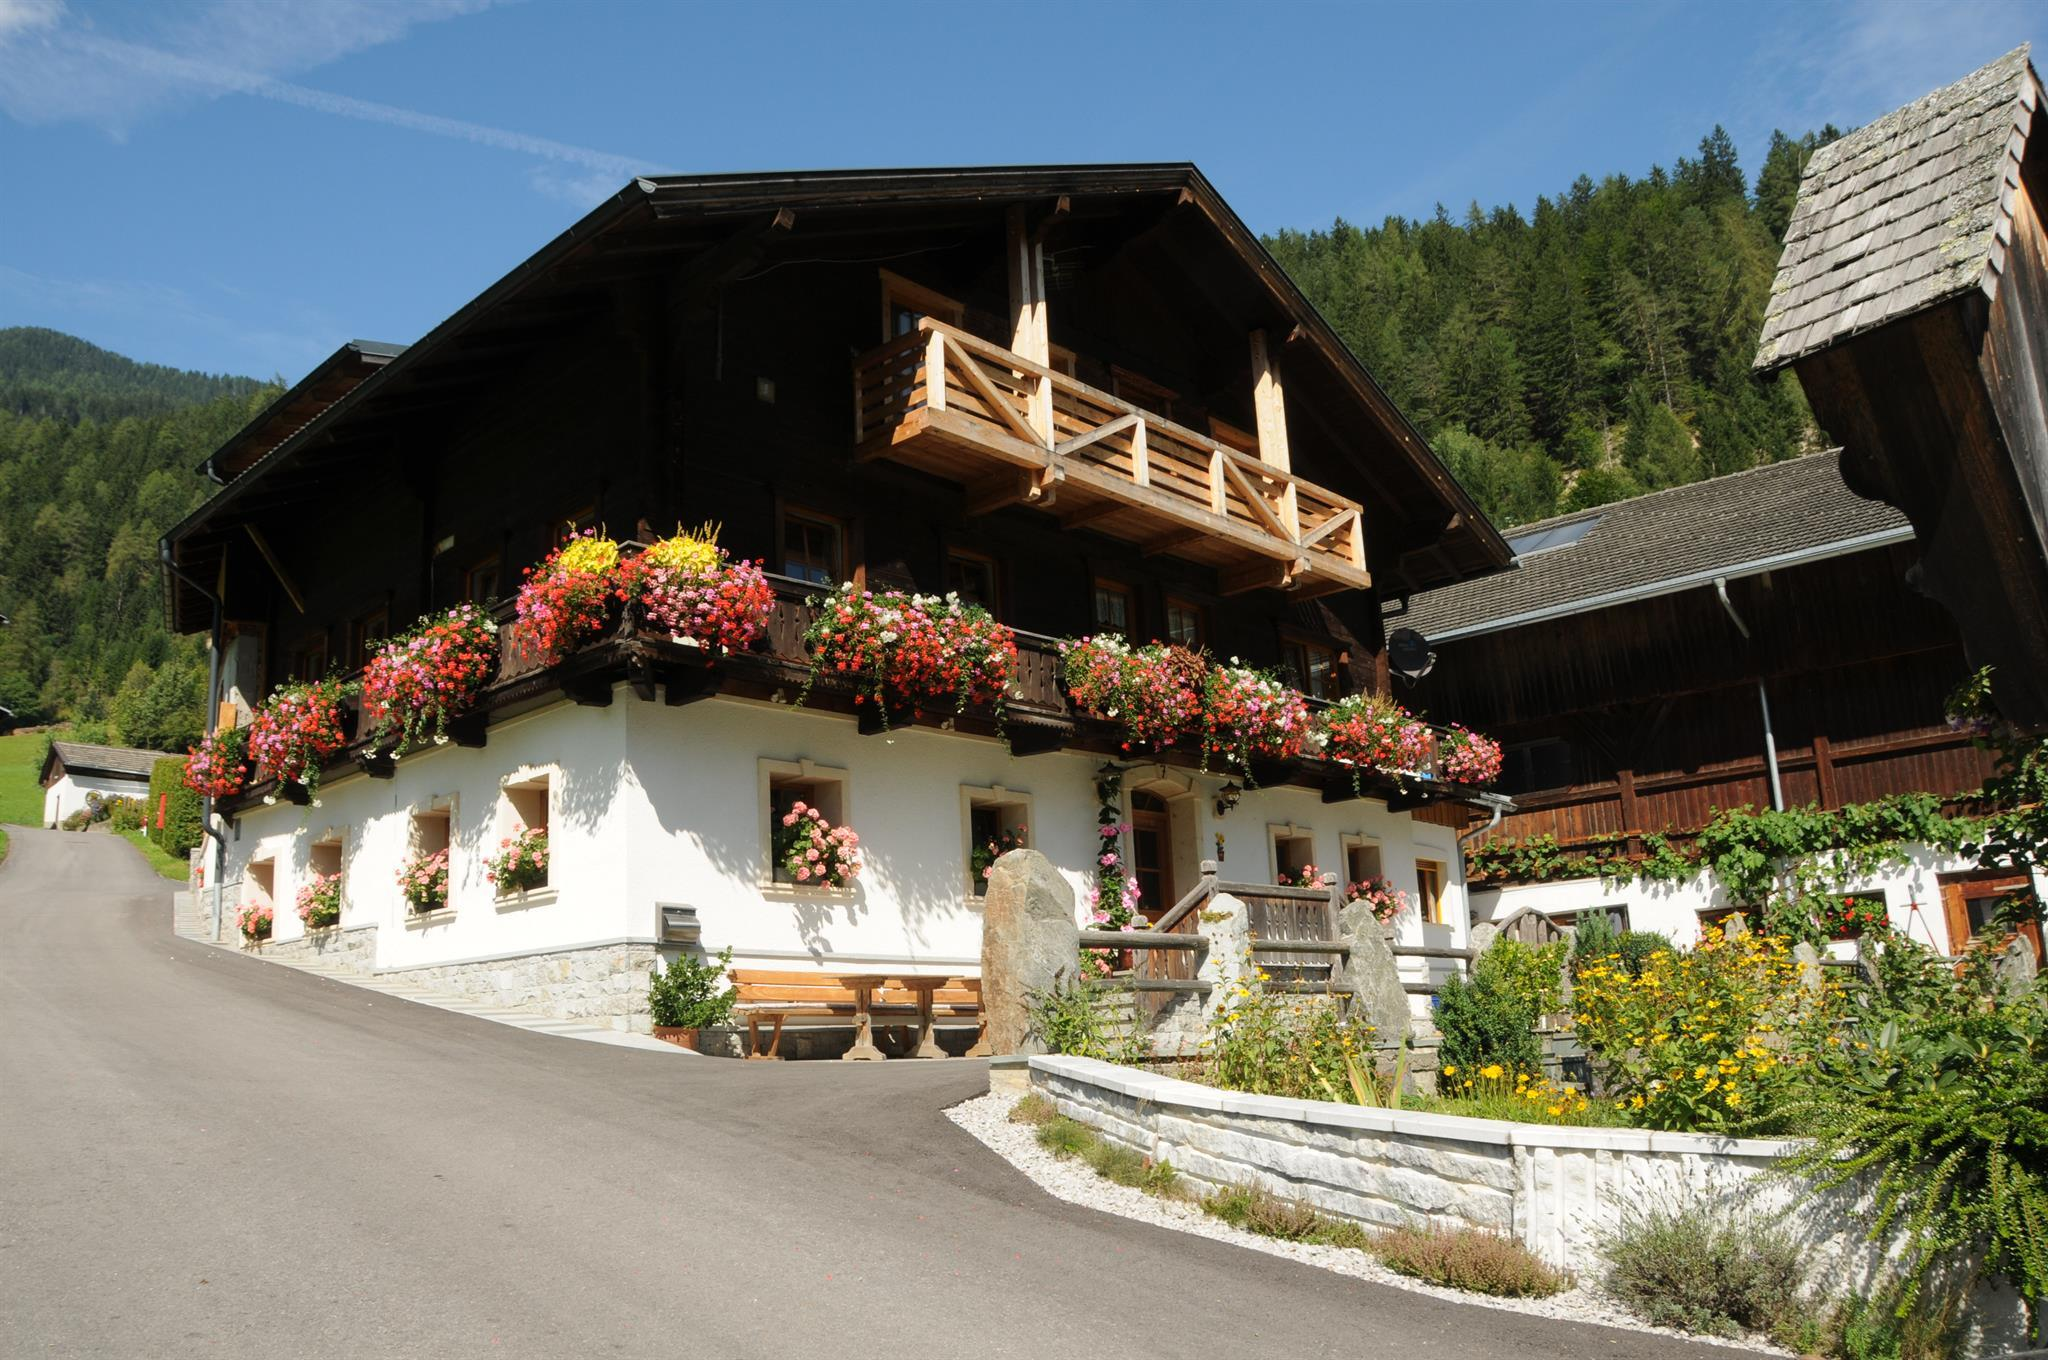 001-Haus-Delacher-1092012-MOrtner.jpg